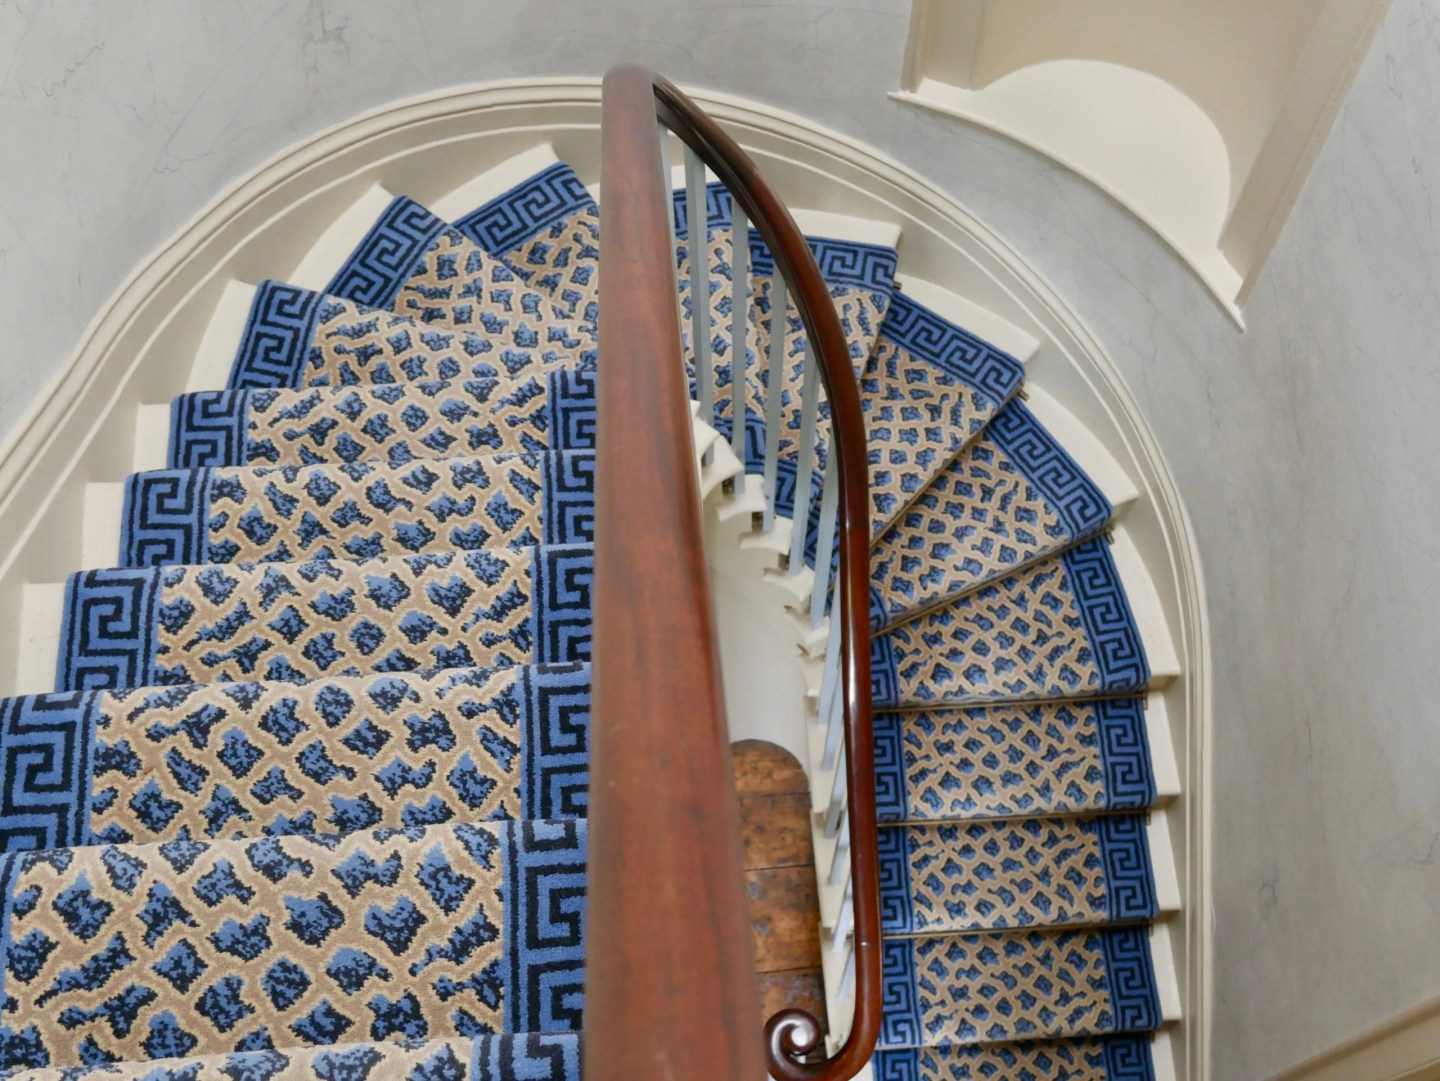 Looking down a curving staircase with blue carpet at Turner's House